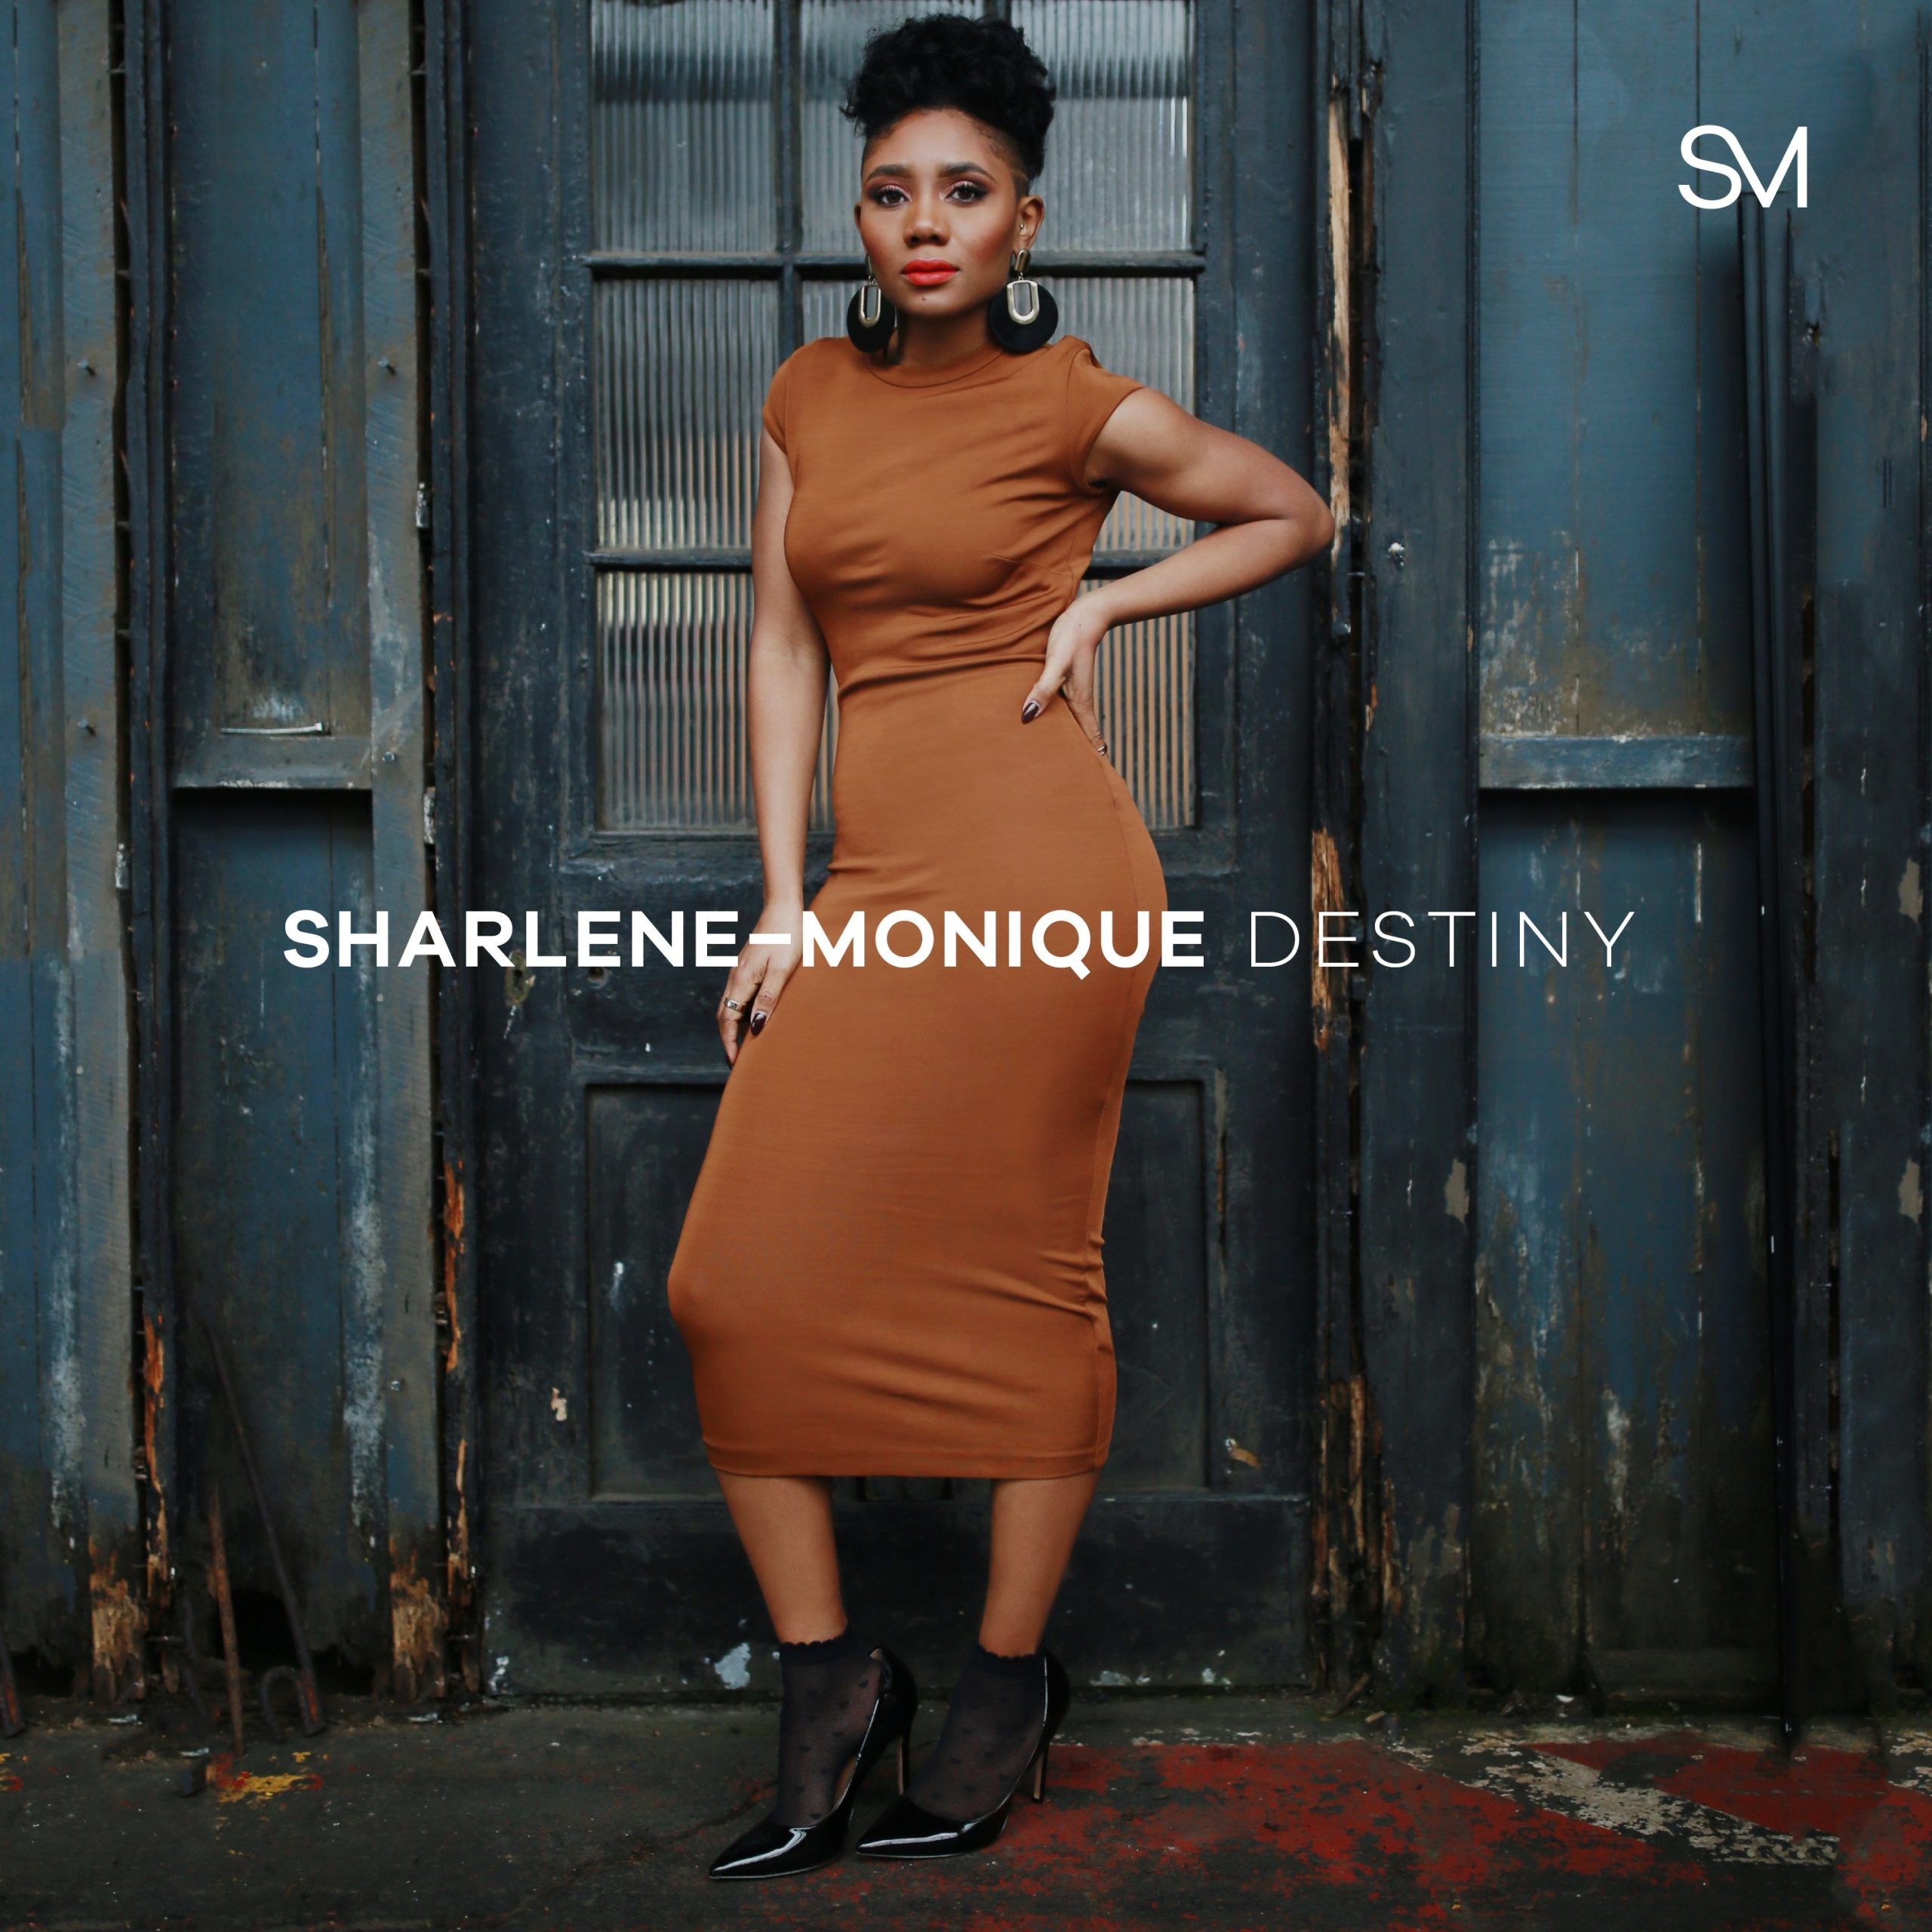 Sharlene-Monique's cover art for 'Destiny'